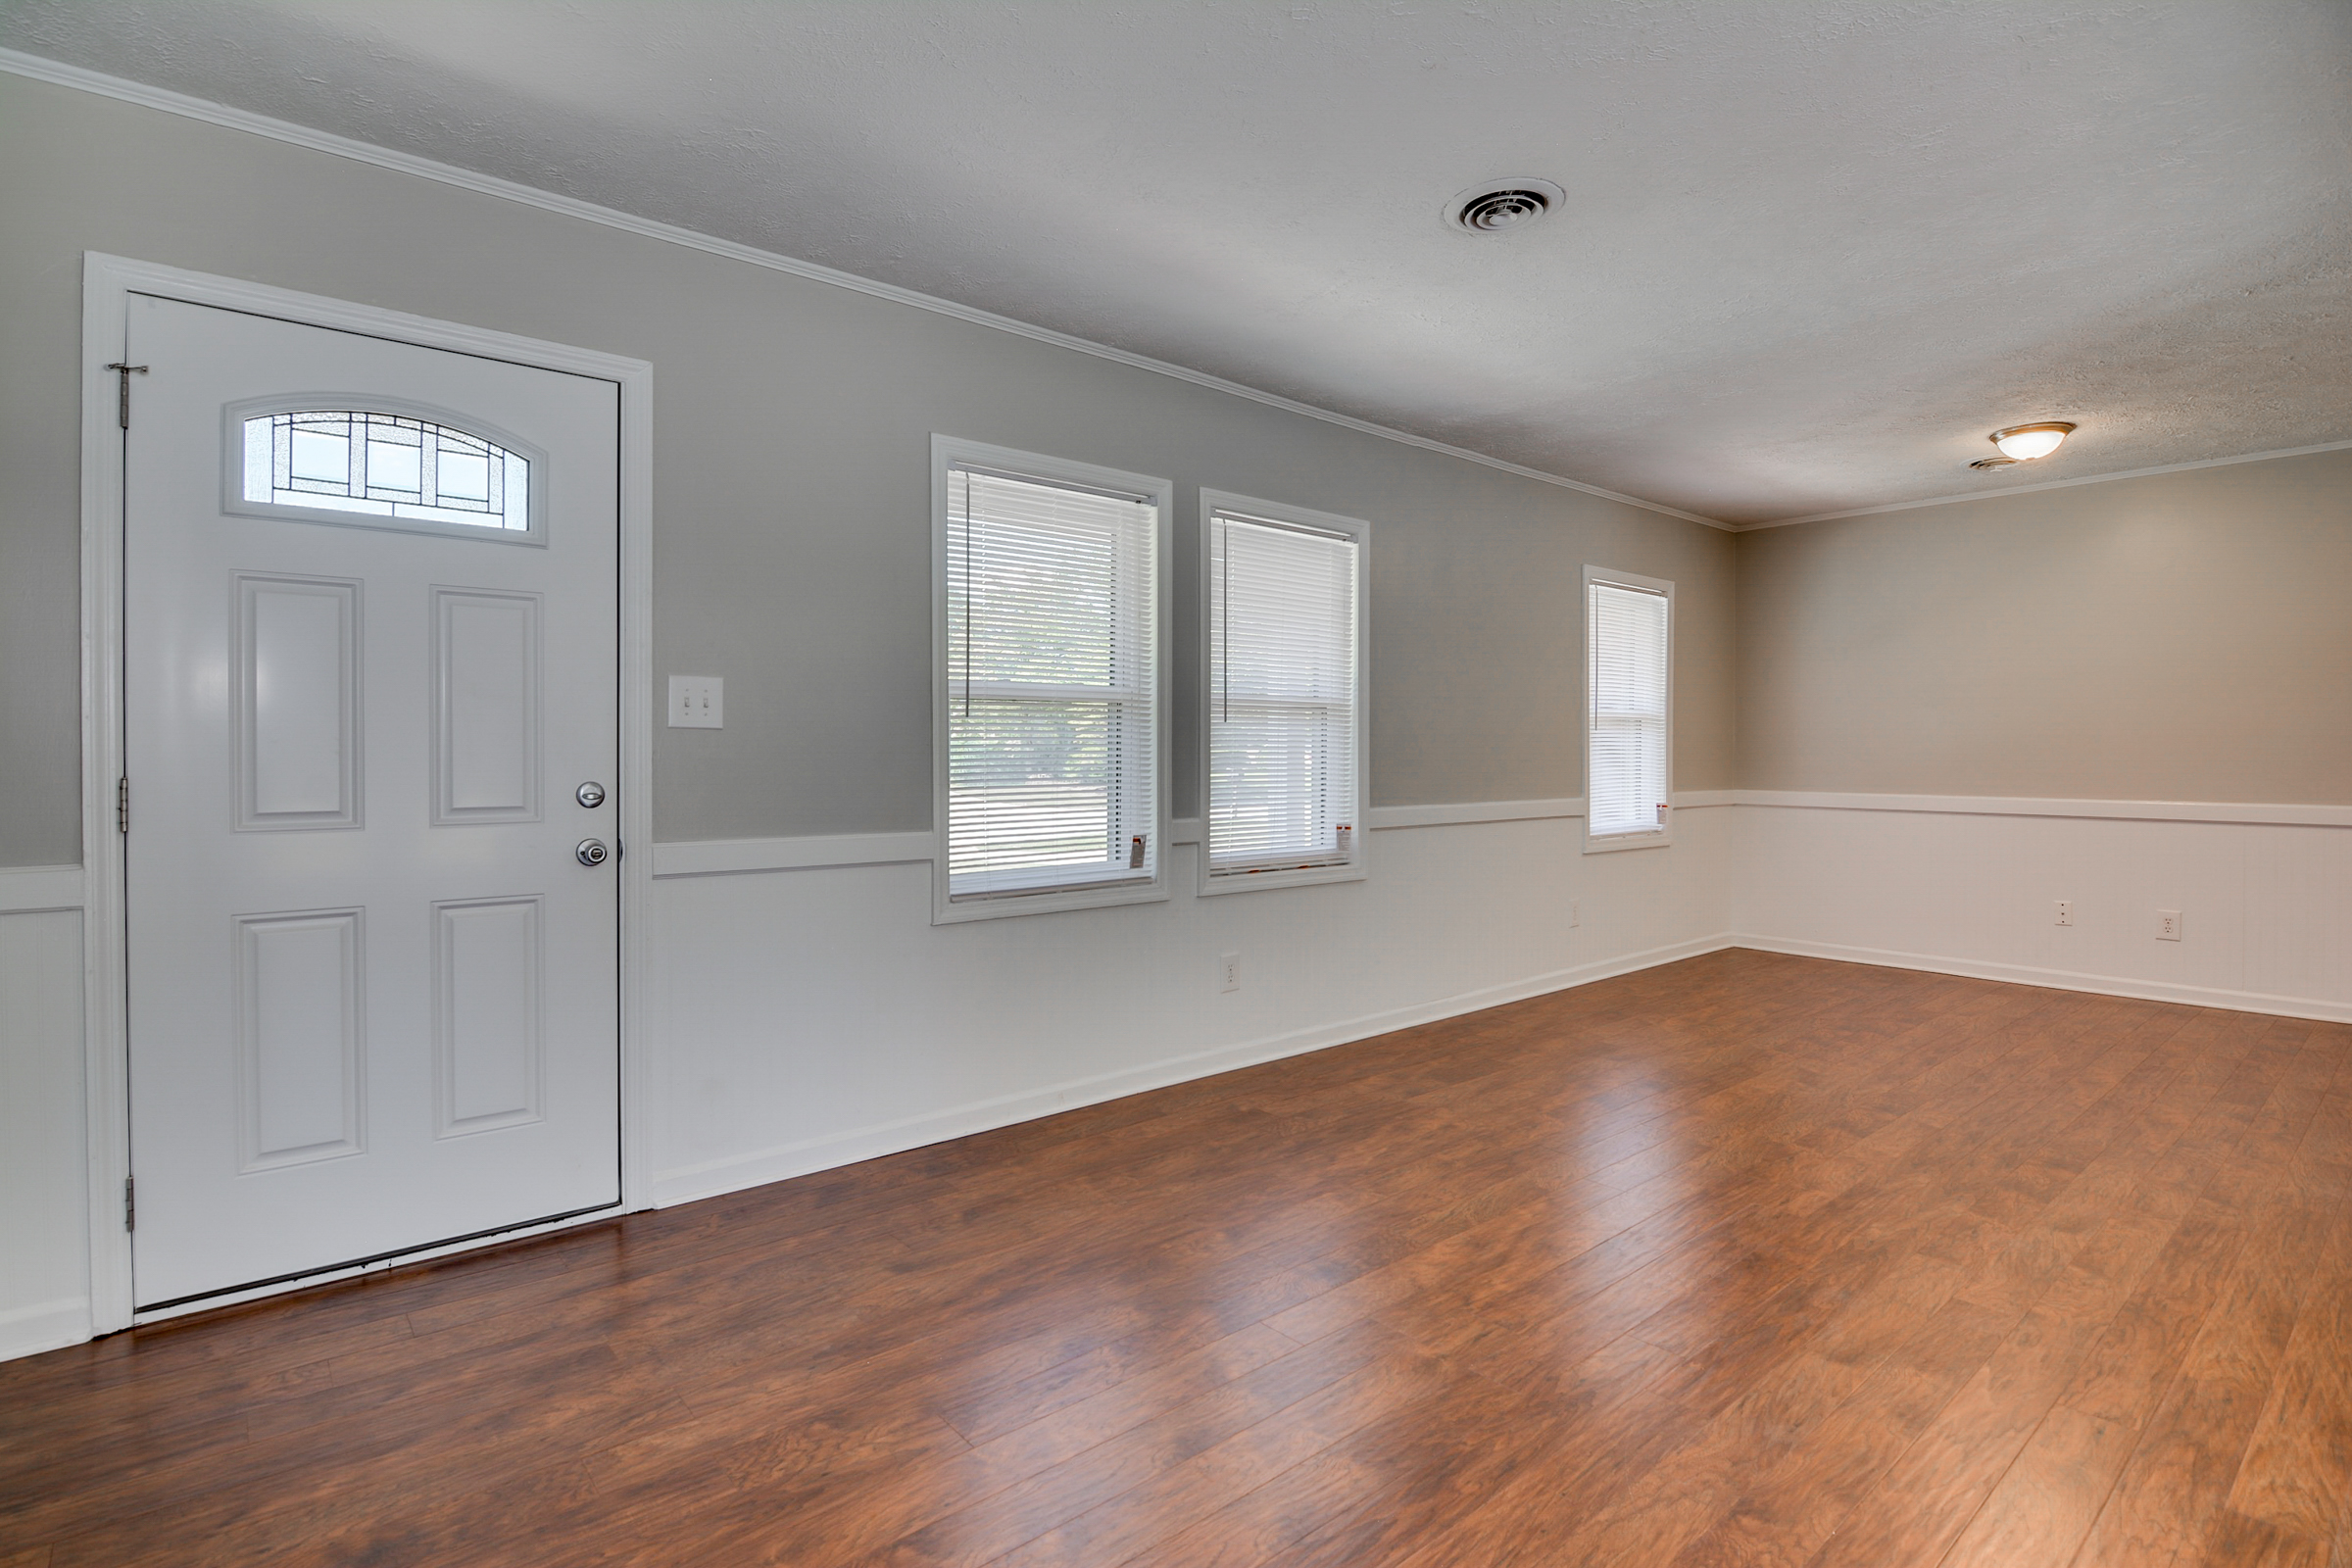 Spacious open ranch with beautiful updates jim hadden home sales eat in dream kitchen which features gleaming new granite countertops new stainless steel appliances and a ceramic tile floor french doors from dining dailygadgetfo Images